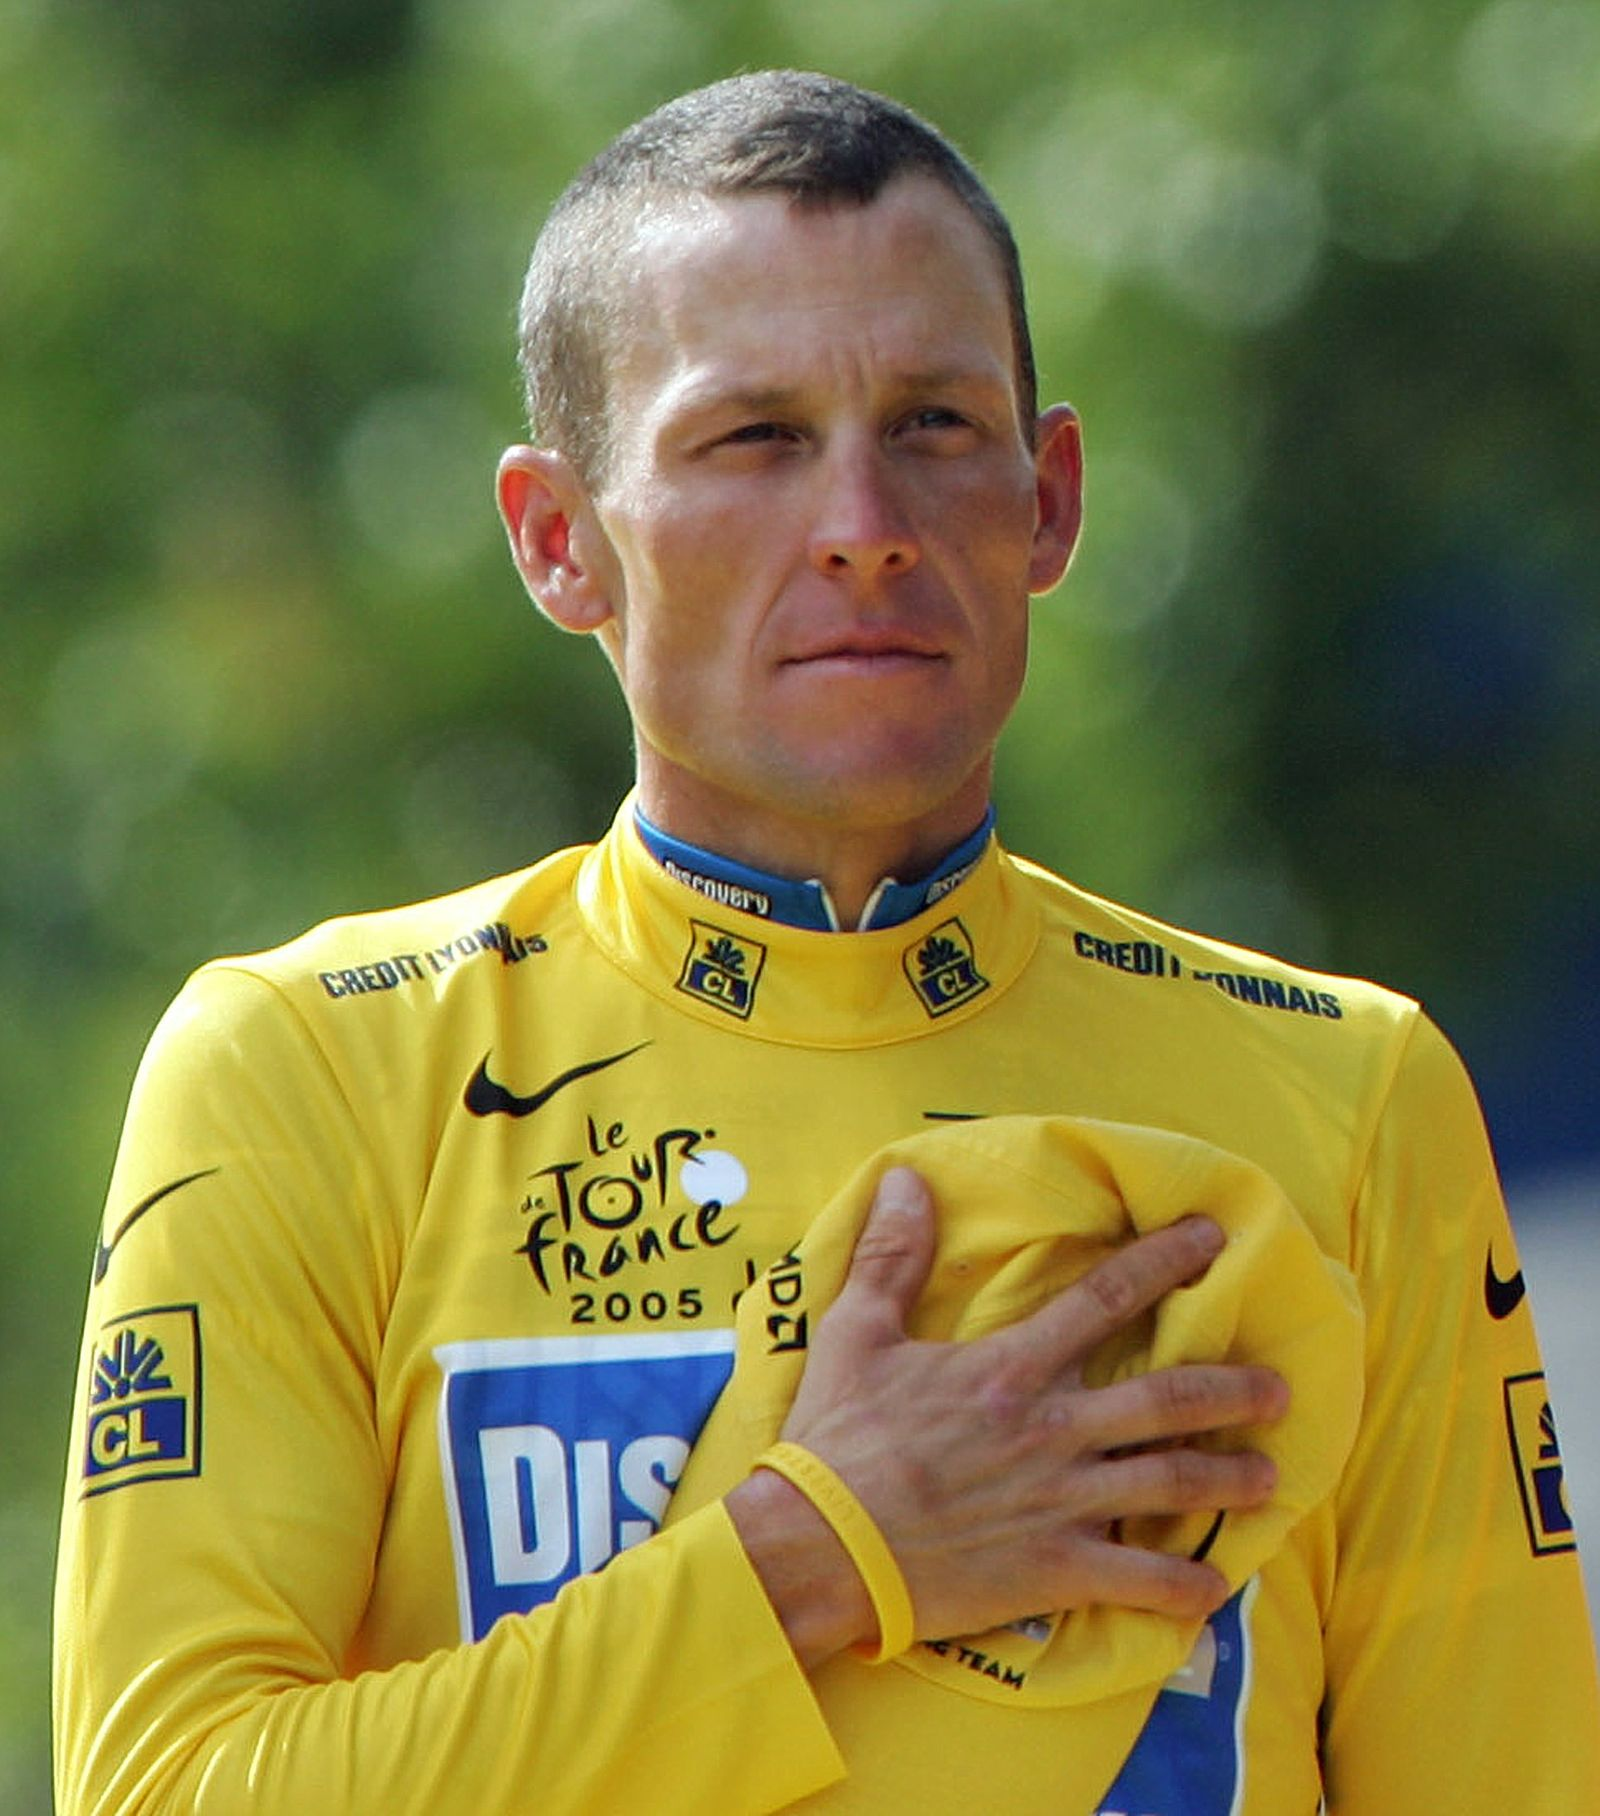 CYCLING ARMSTRONG/DOPING